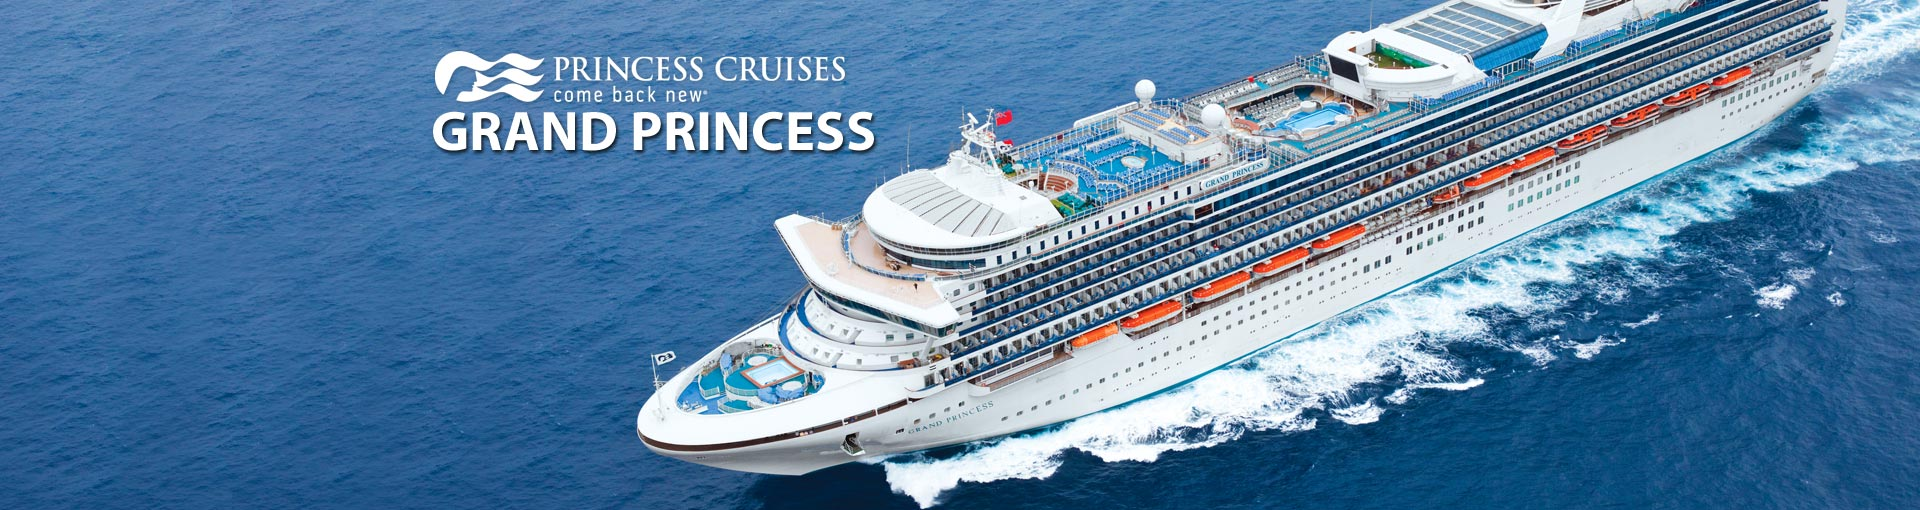 Princess Cruises Grand Princess cruise ship